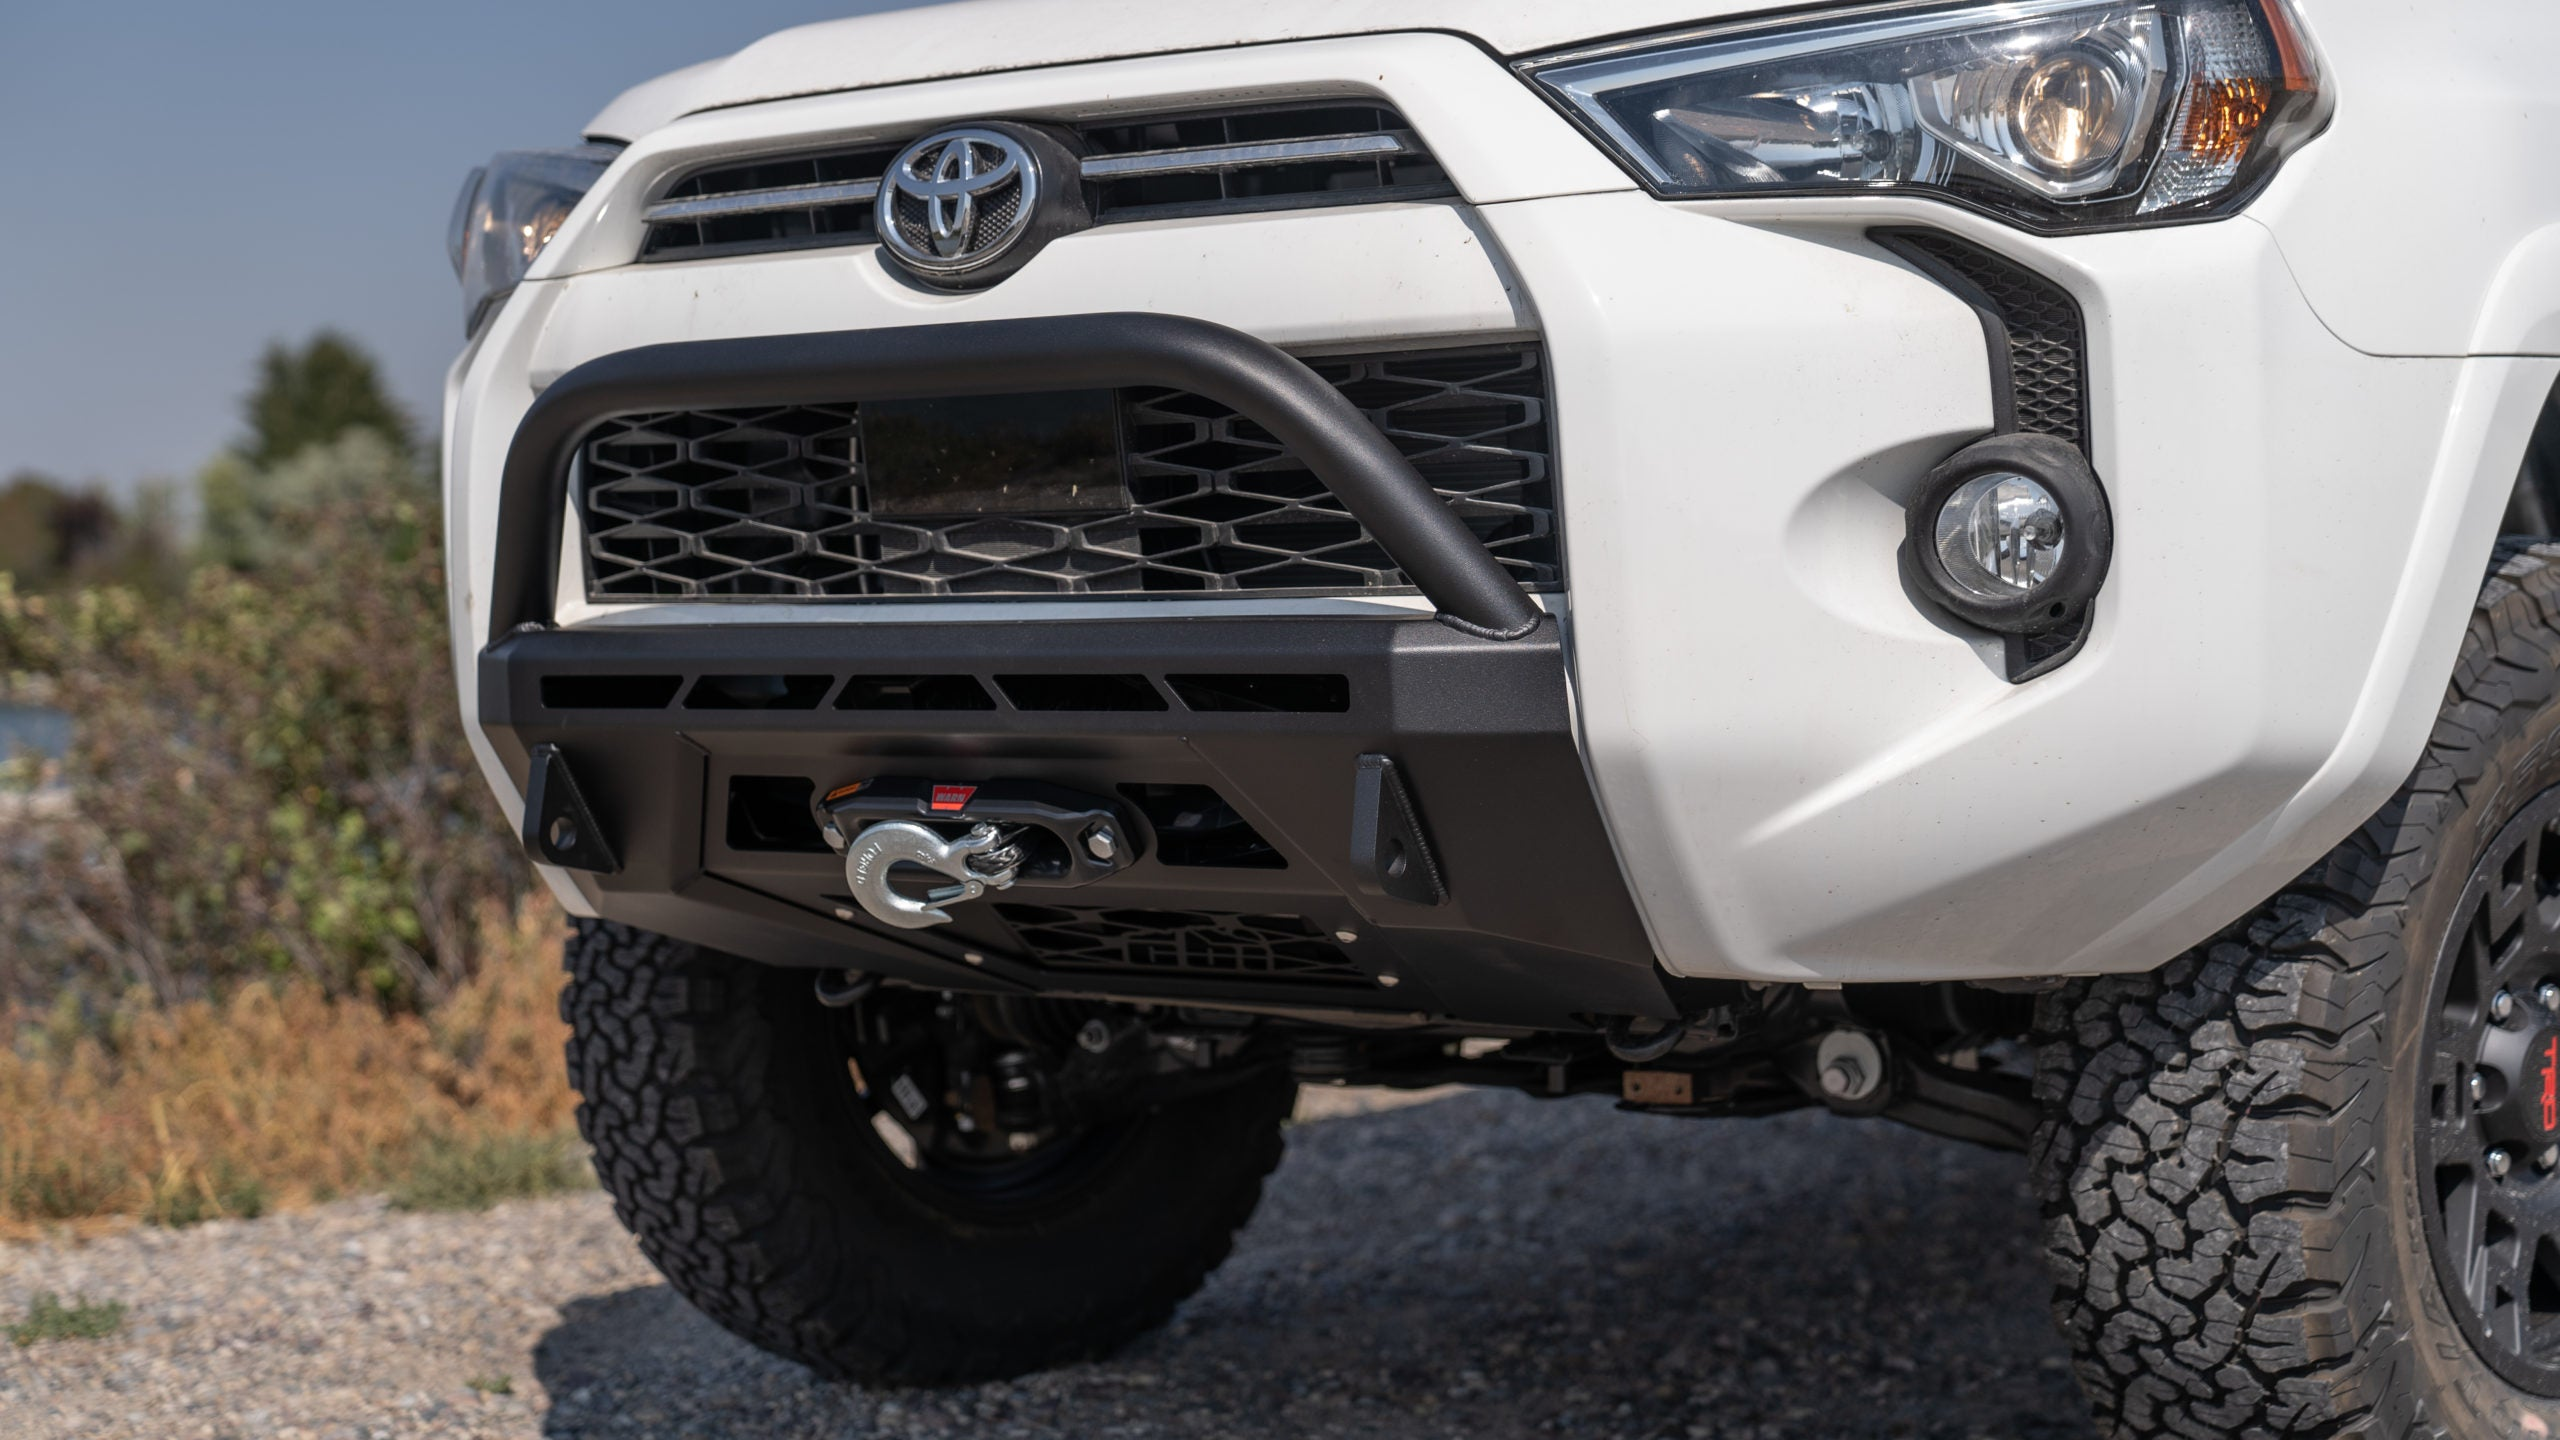 CBI - Covert Front Bumper - Toyota 4Runner 5th Gen 2014-2021 - 4x4 Runners